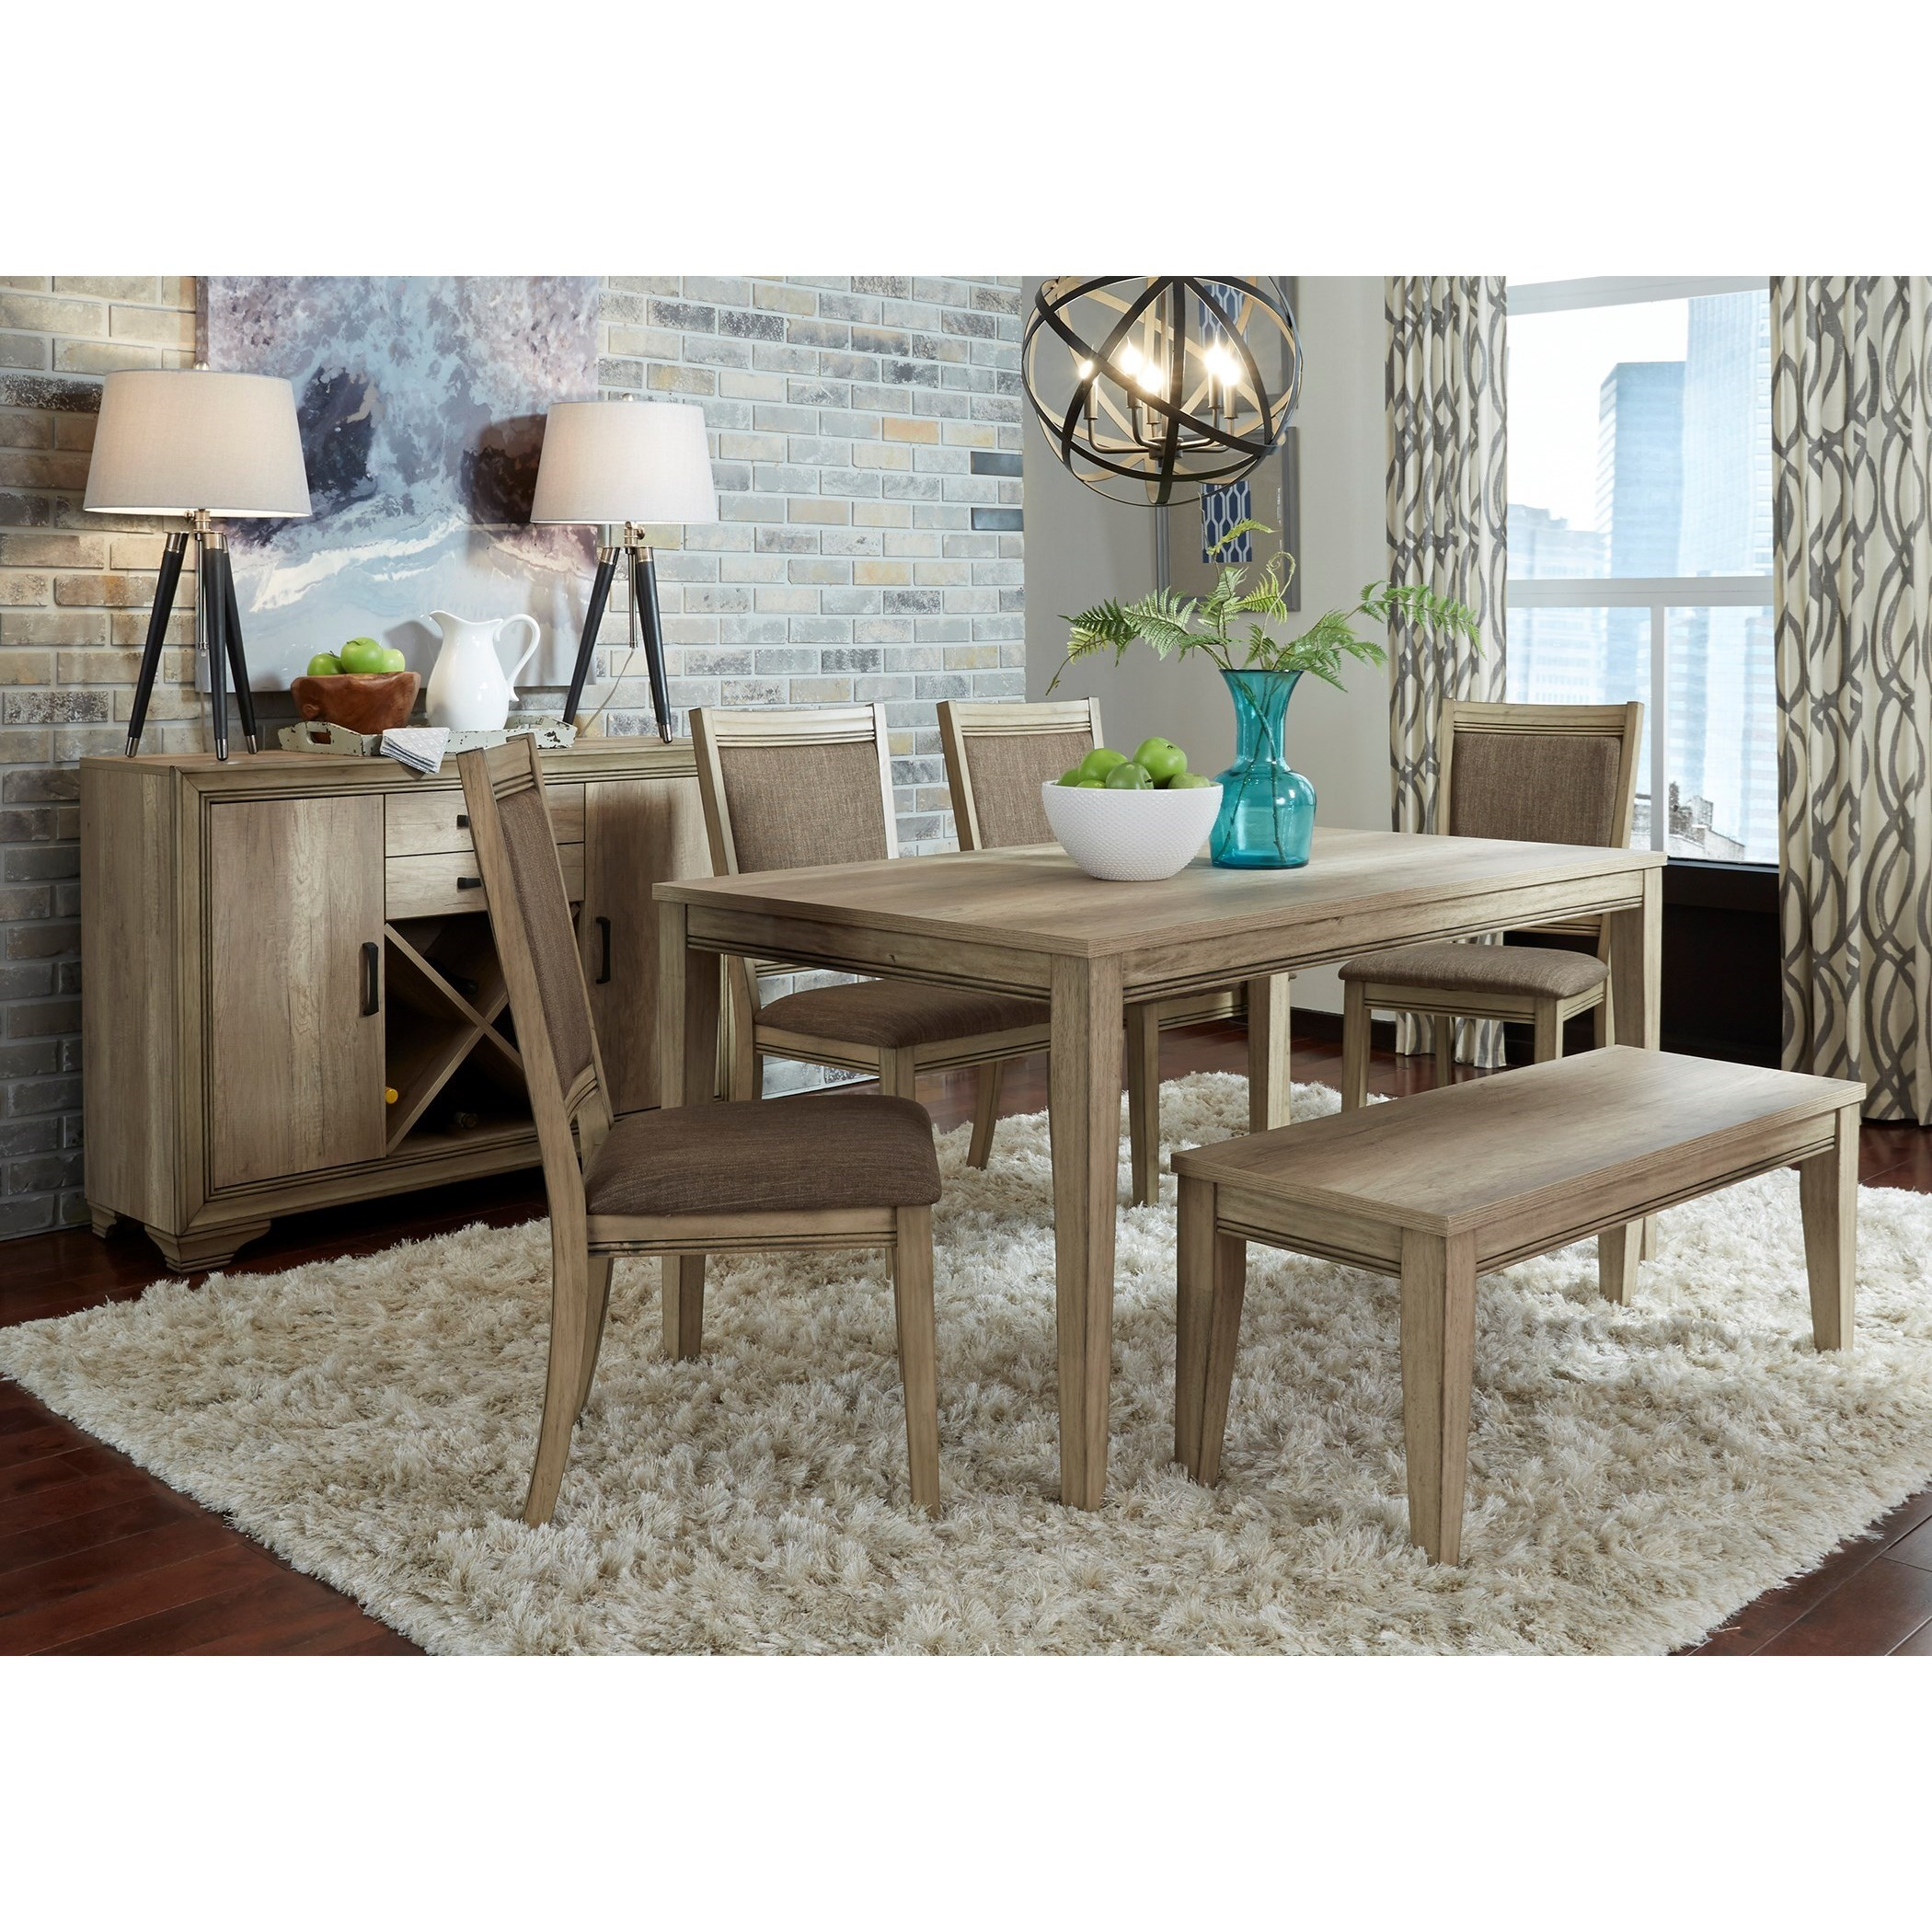 Sun Valley Opt 6 Piece Rectangular Table Set  by Liberty Furniture at Bullard Furniture